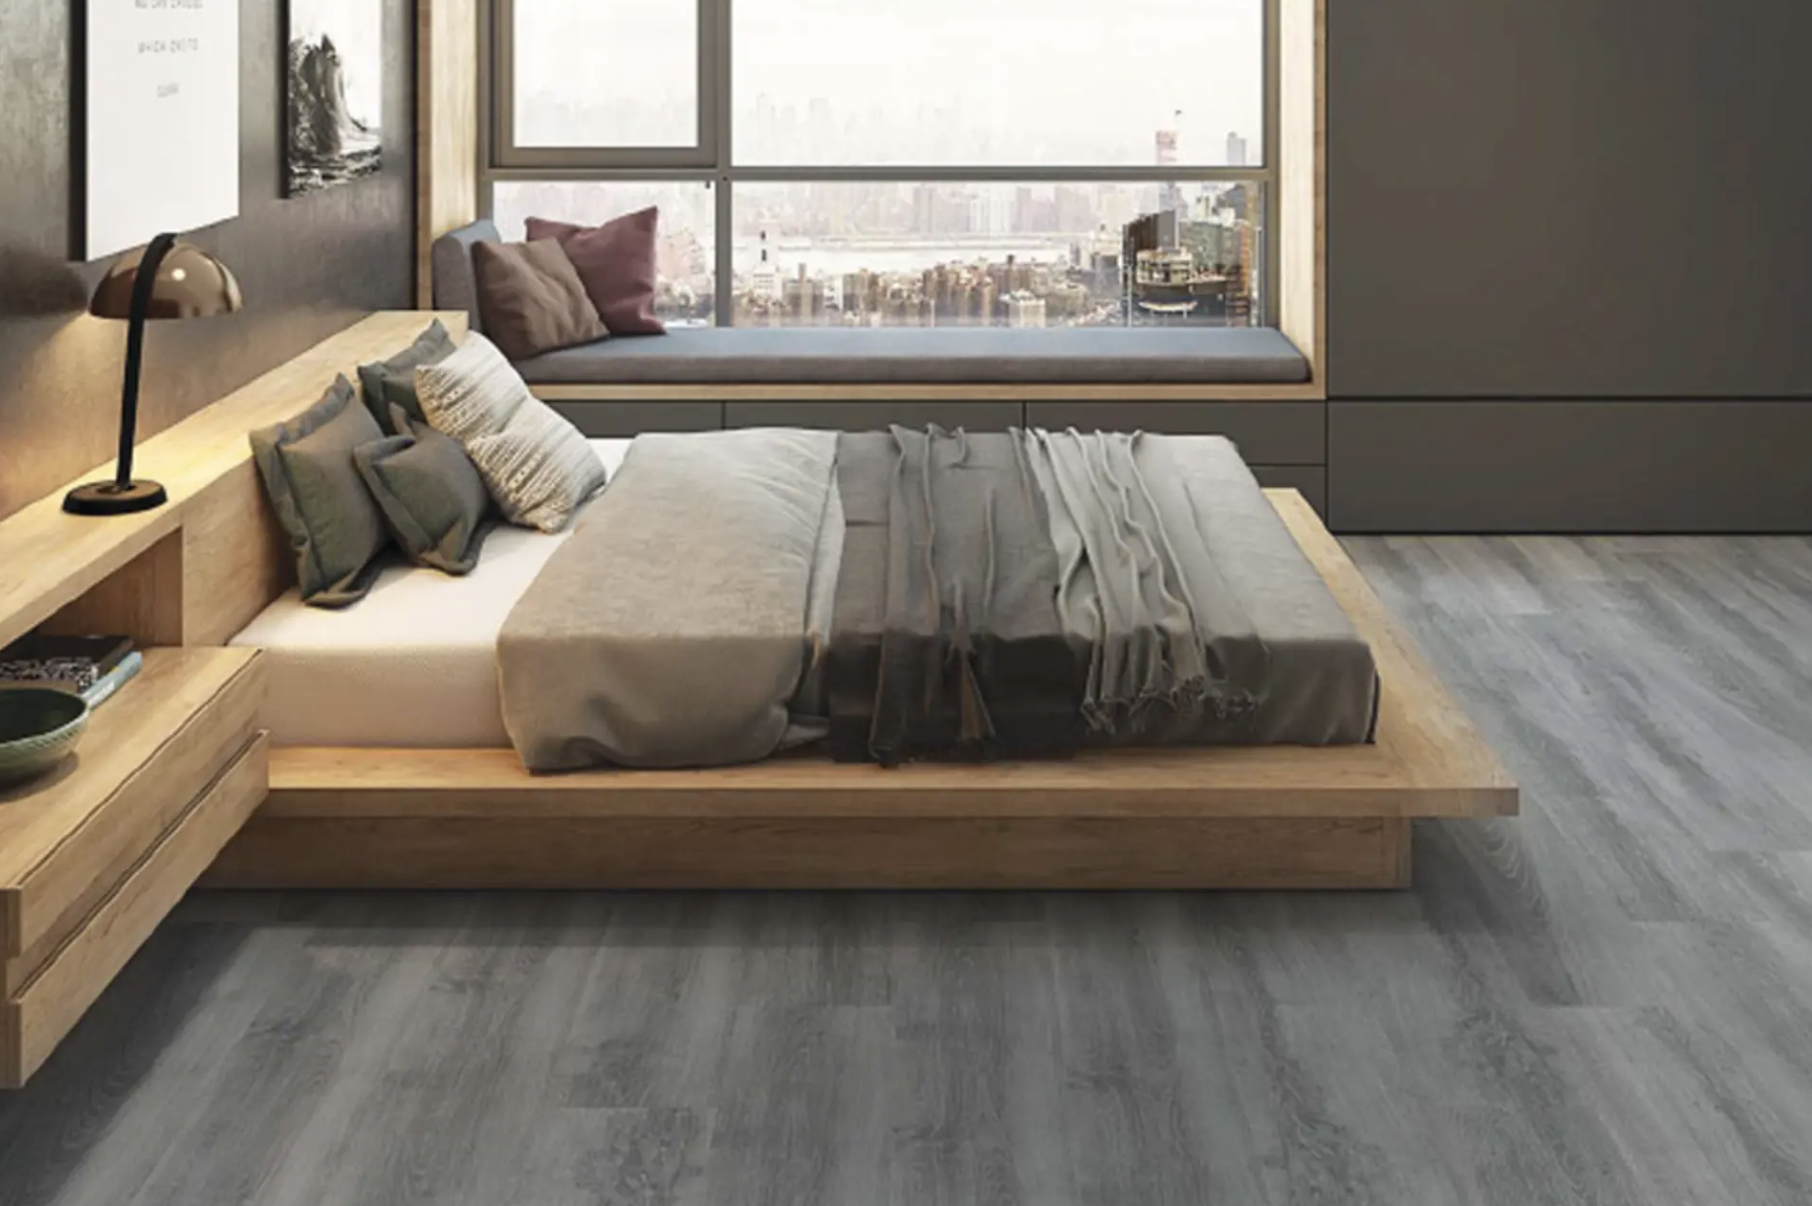 How To Fix Wood Flooring Separation